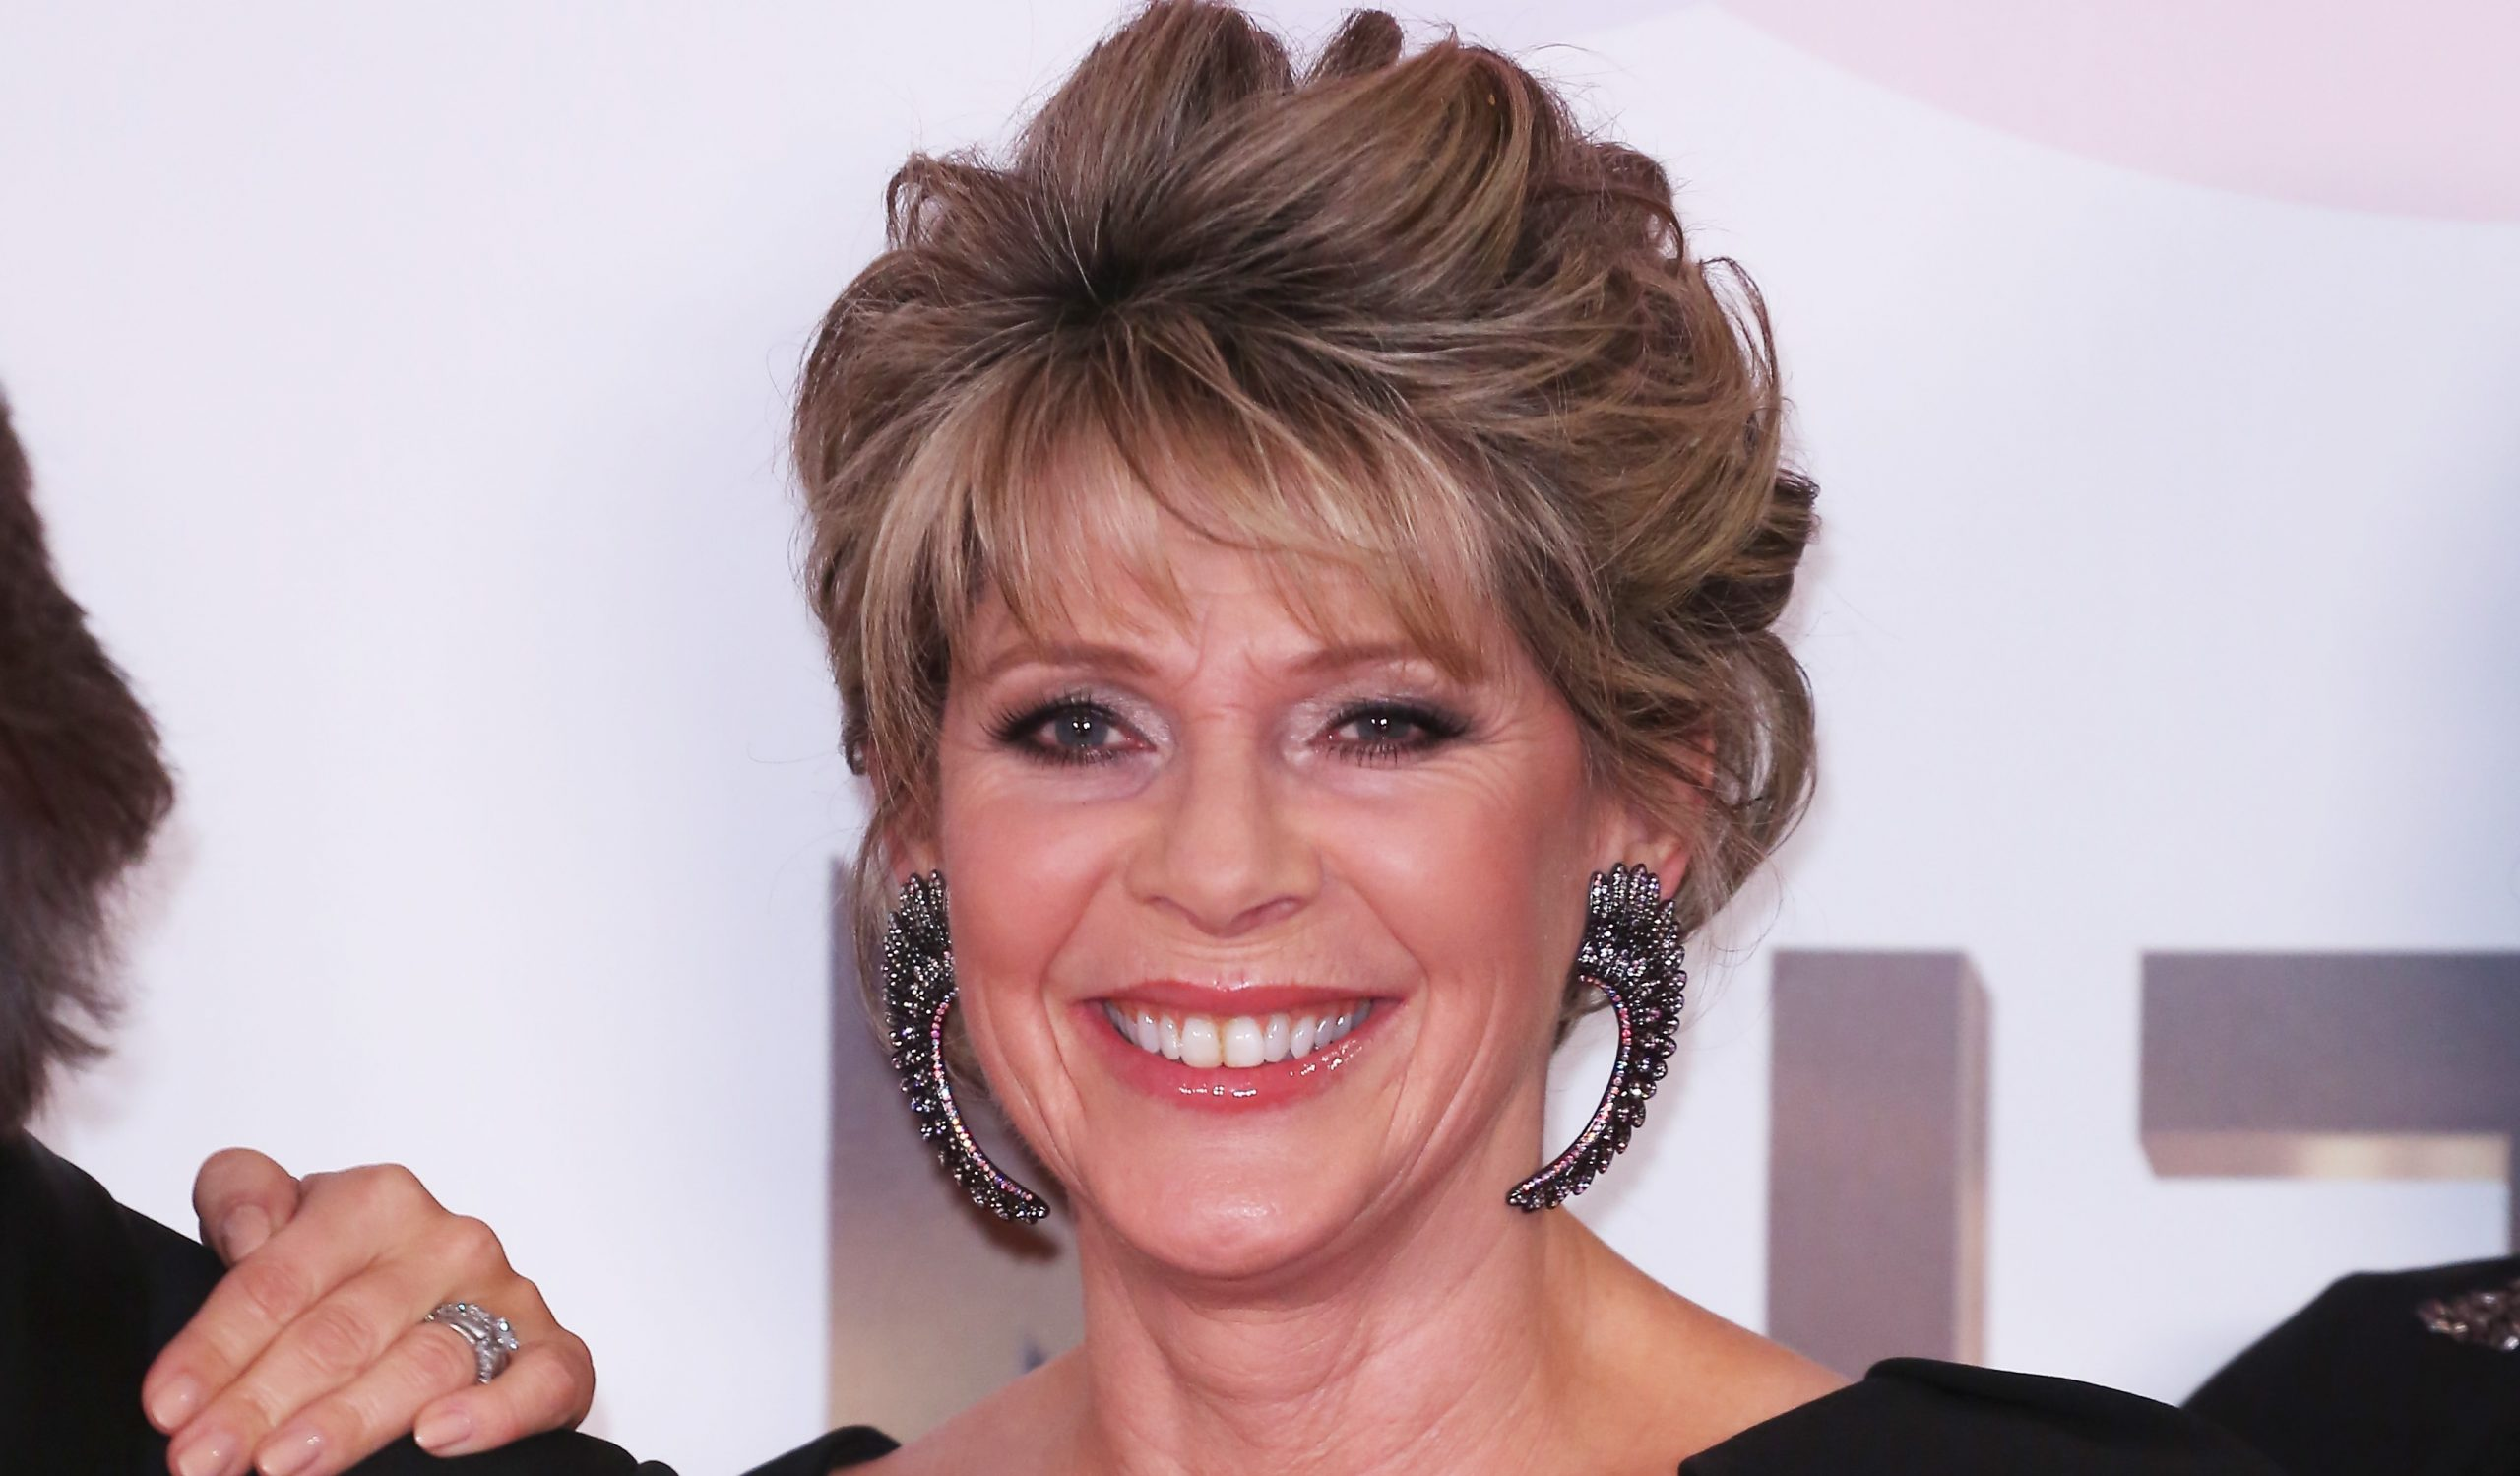 Mother's Day: Ruth Langsford shares poignant tribute to her mum on Instagram